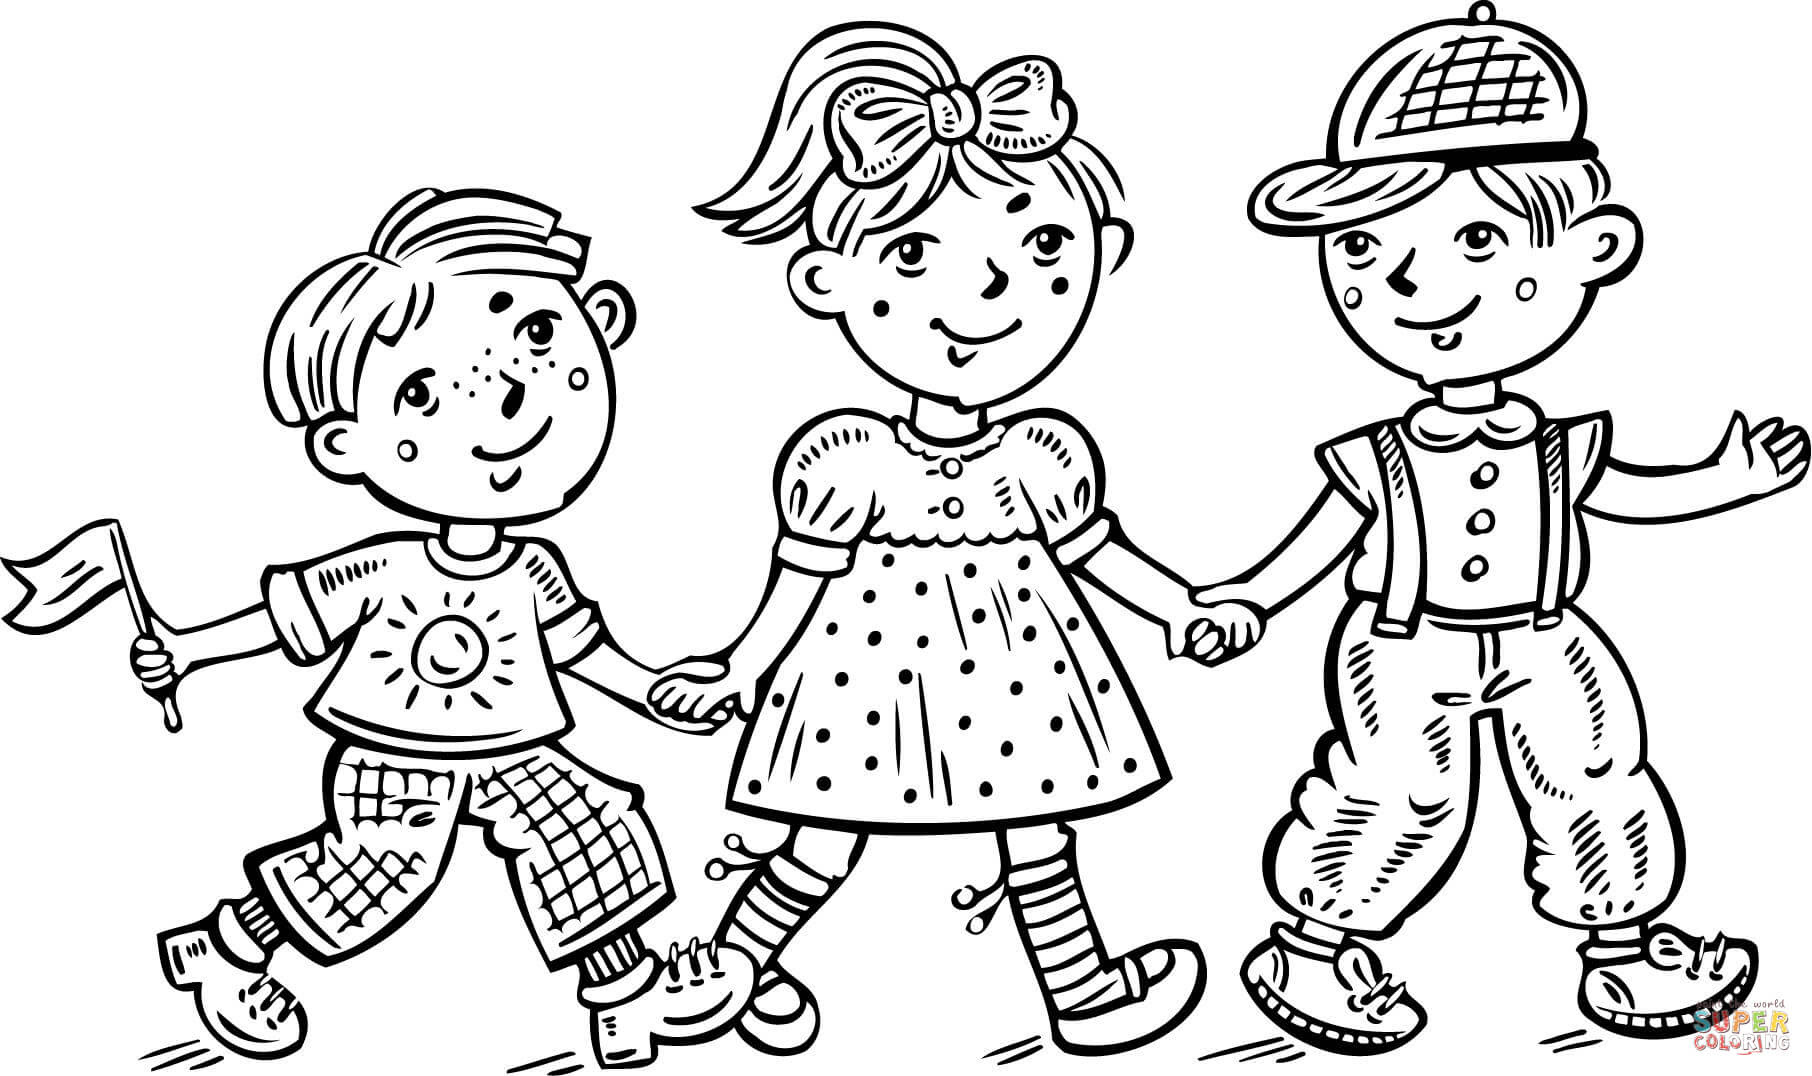 8200 Free Coloring Pages Of A Boy And Girl Images & Pictures In HD